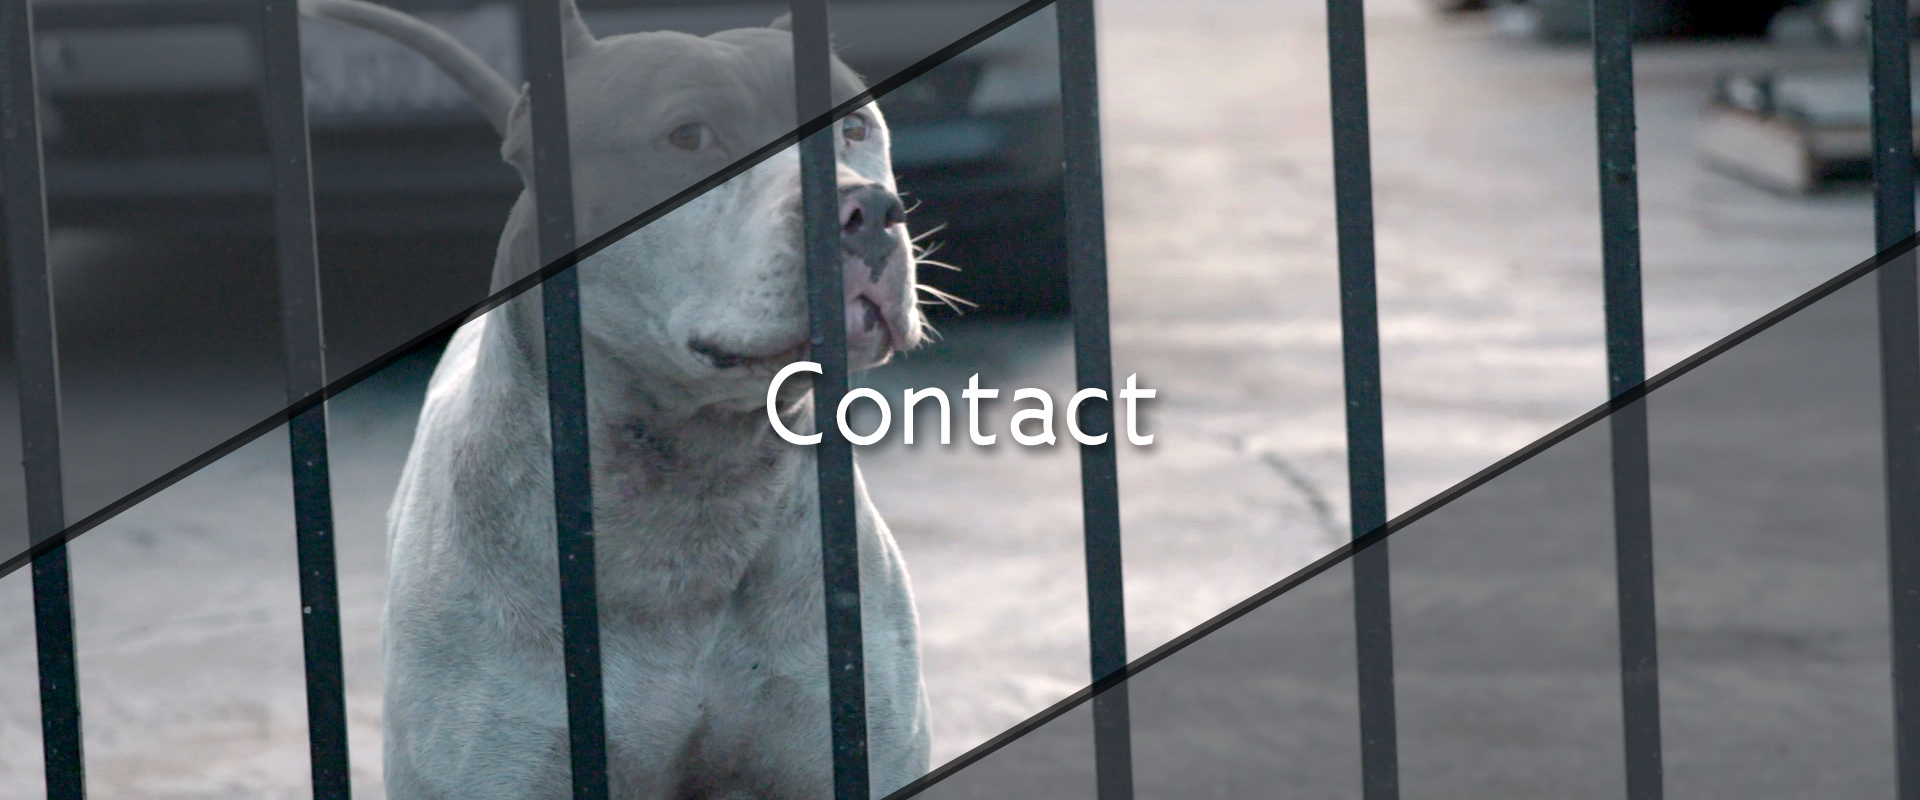 Contact 2016